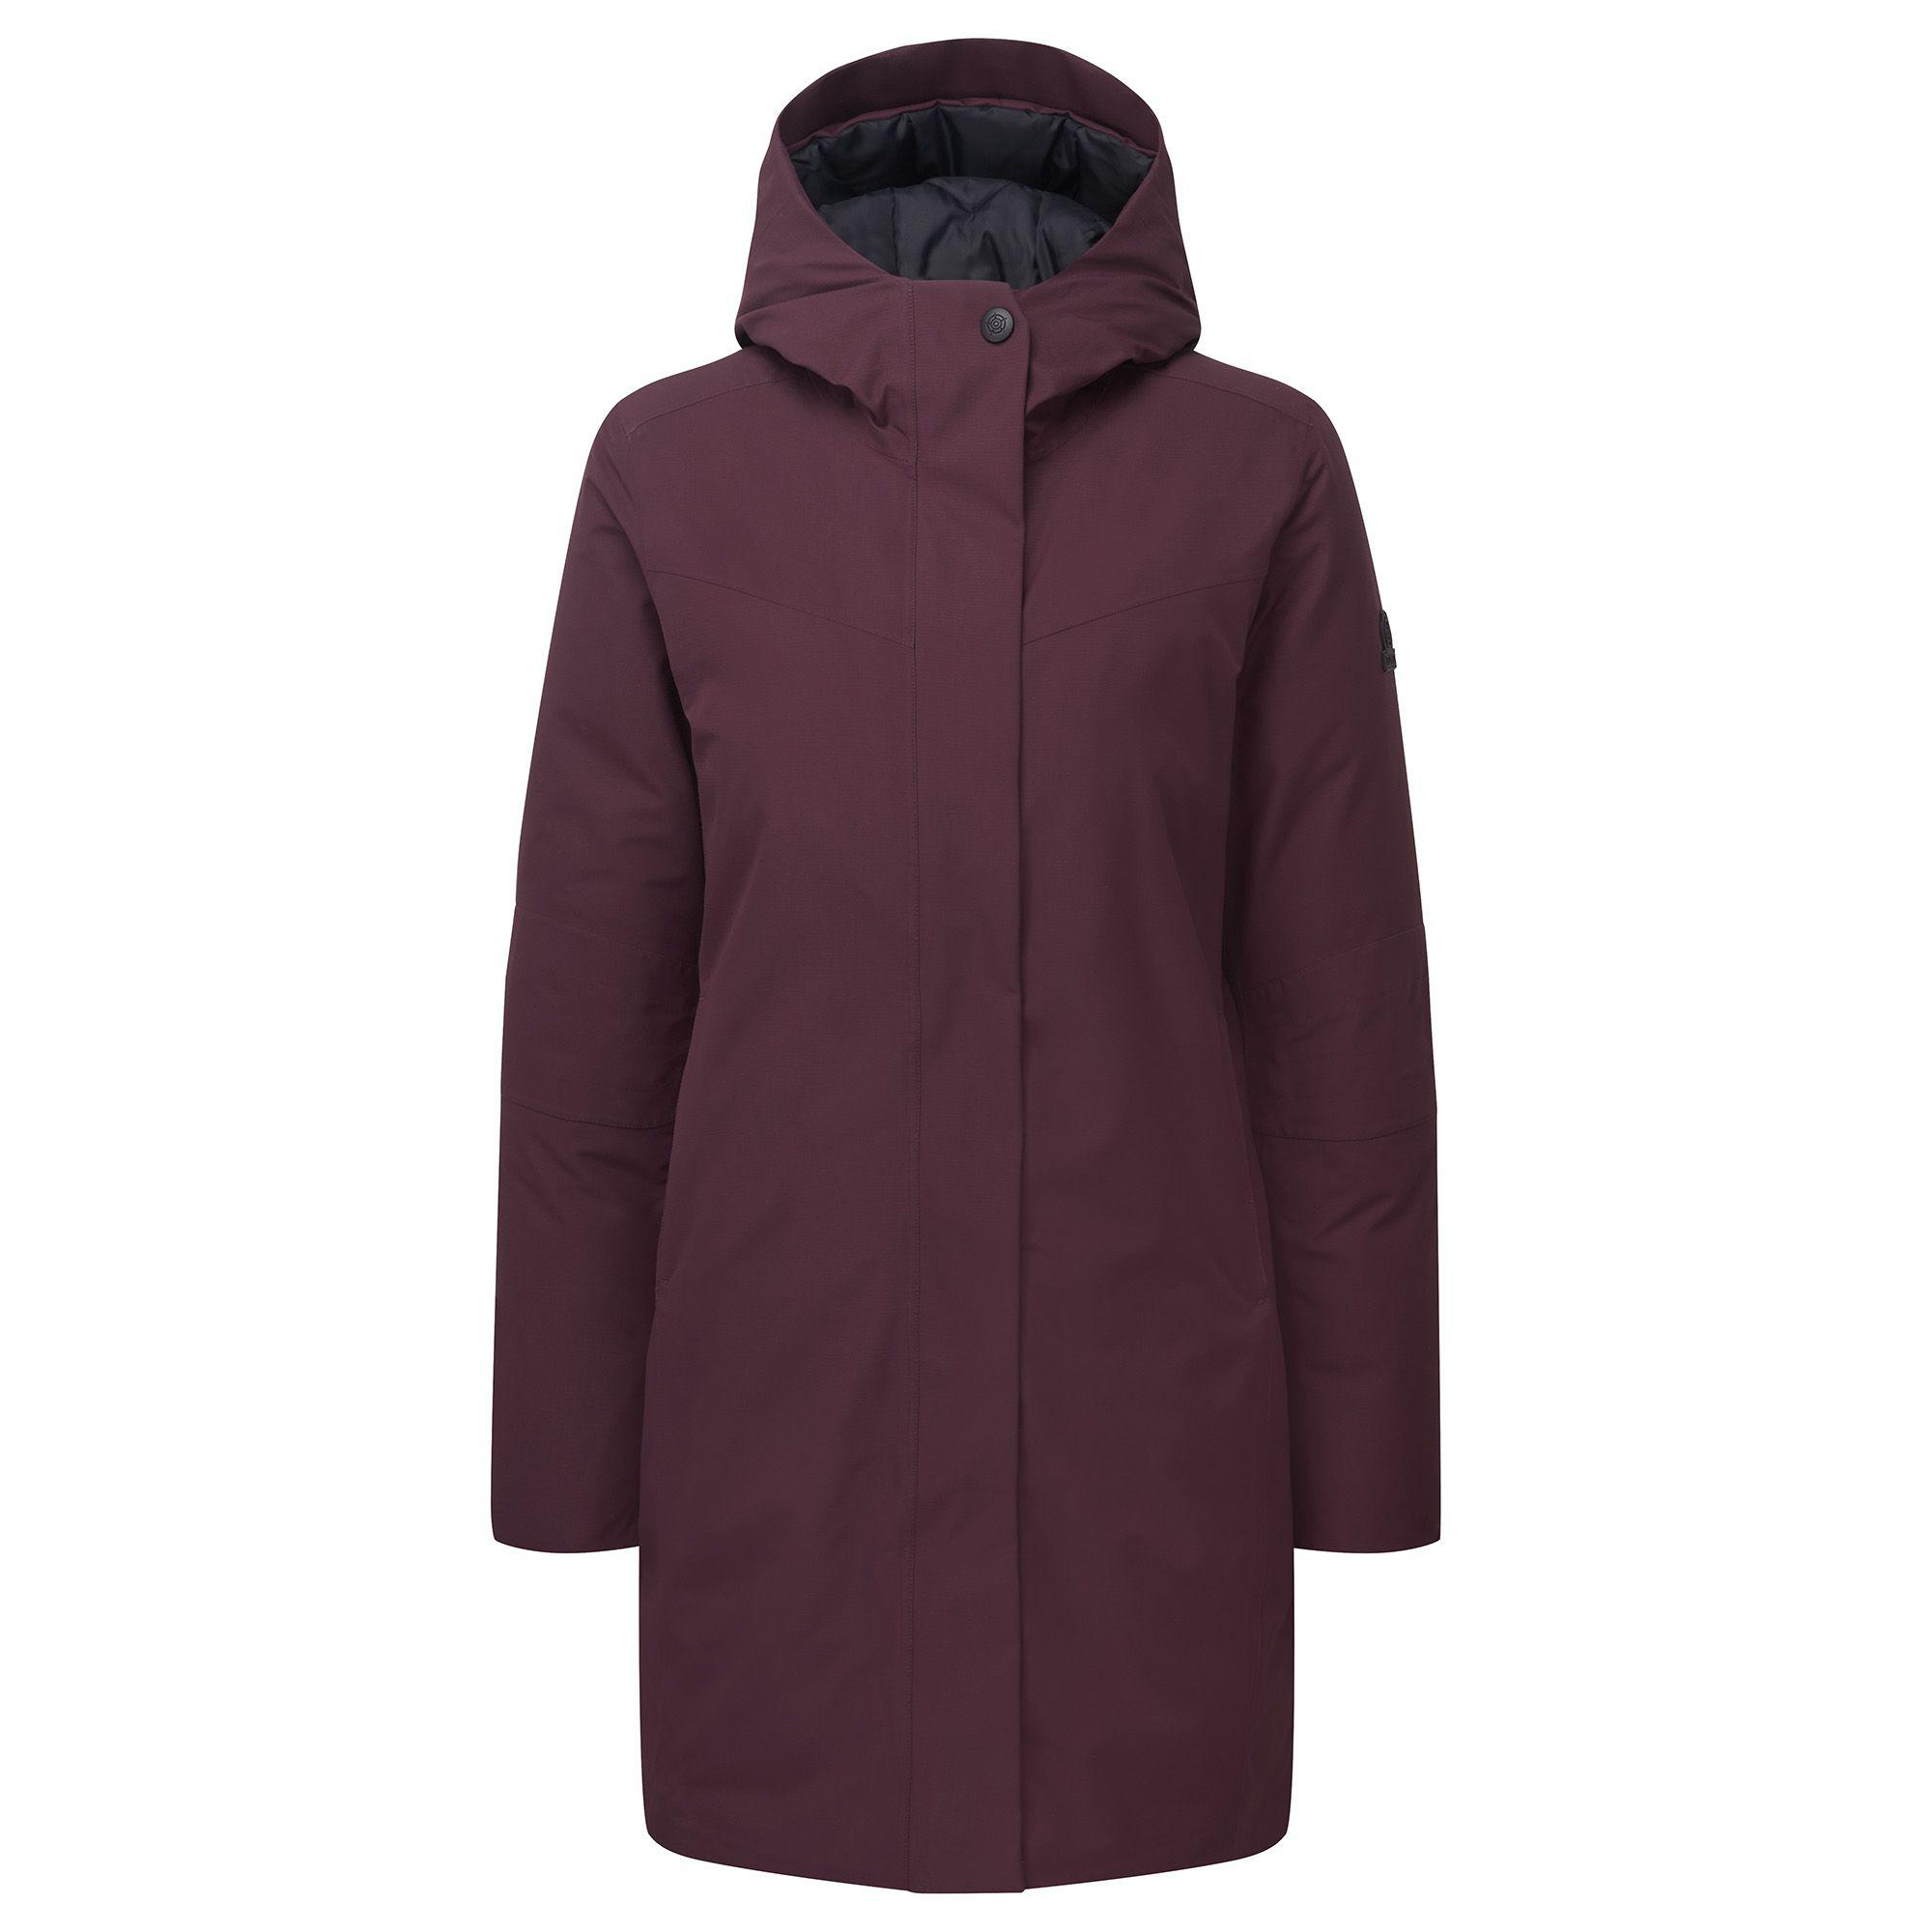 5a7b6484270 Tog 24 Deep Port Luxe Milatex Down Parka Jacket in Purple - Lyst